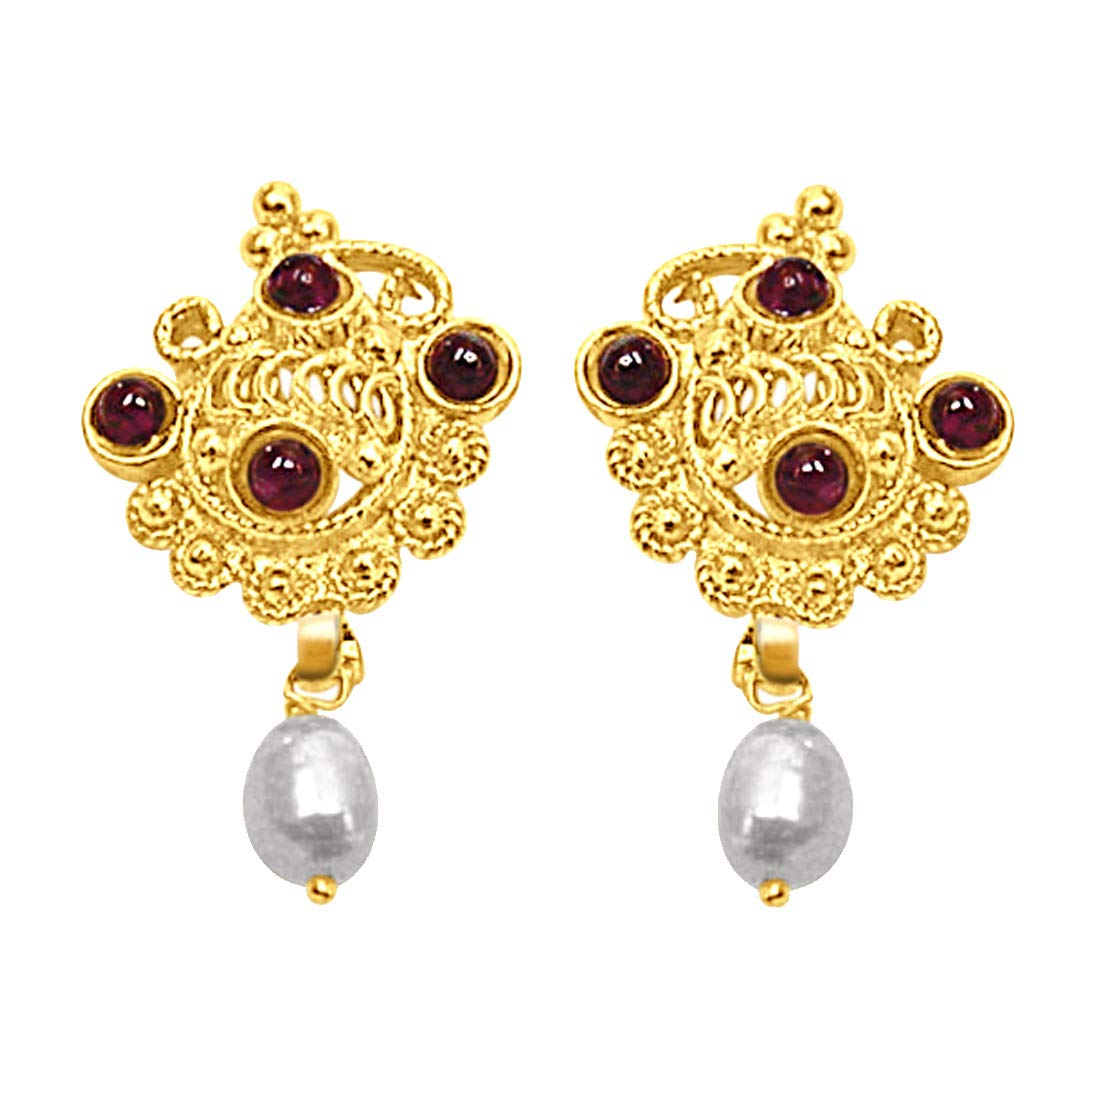 24kt Gold Plated, Freshwater Pearl & Garnet Earrings for Women (SE141)